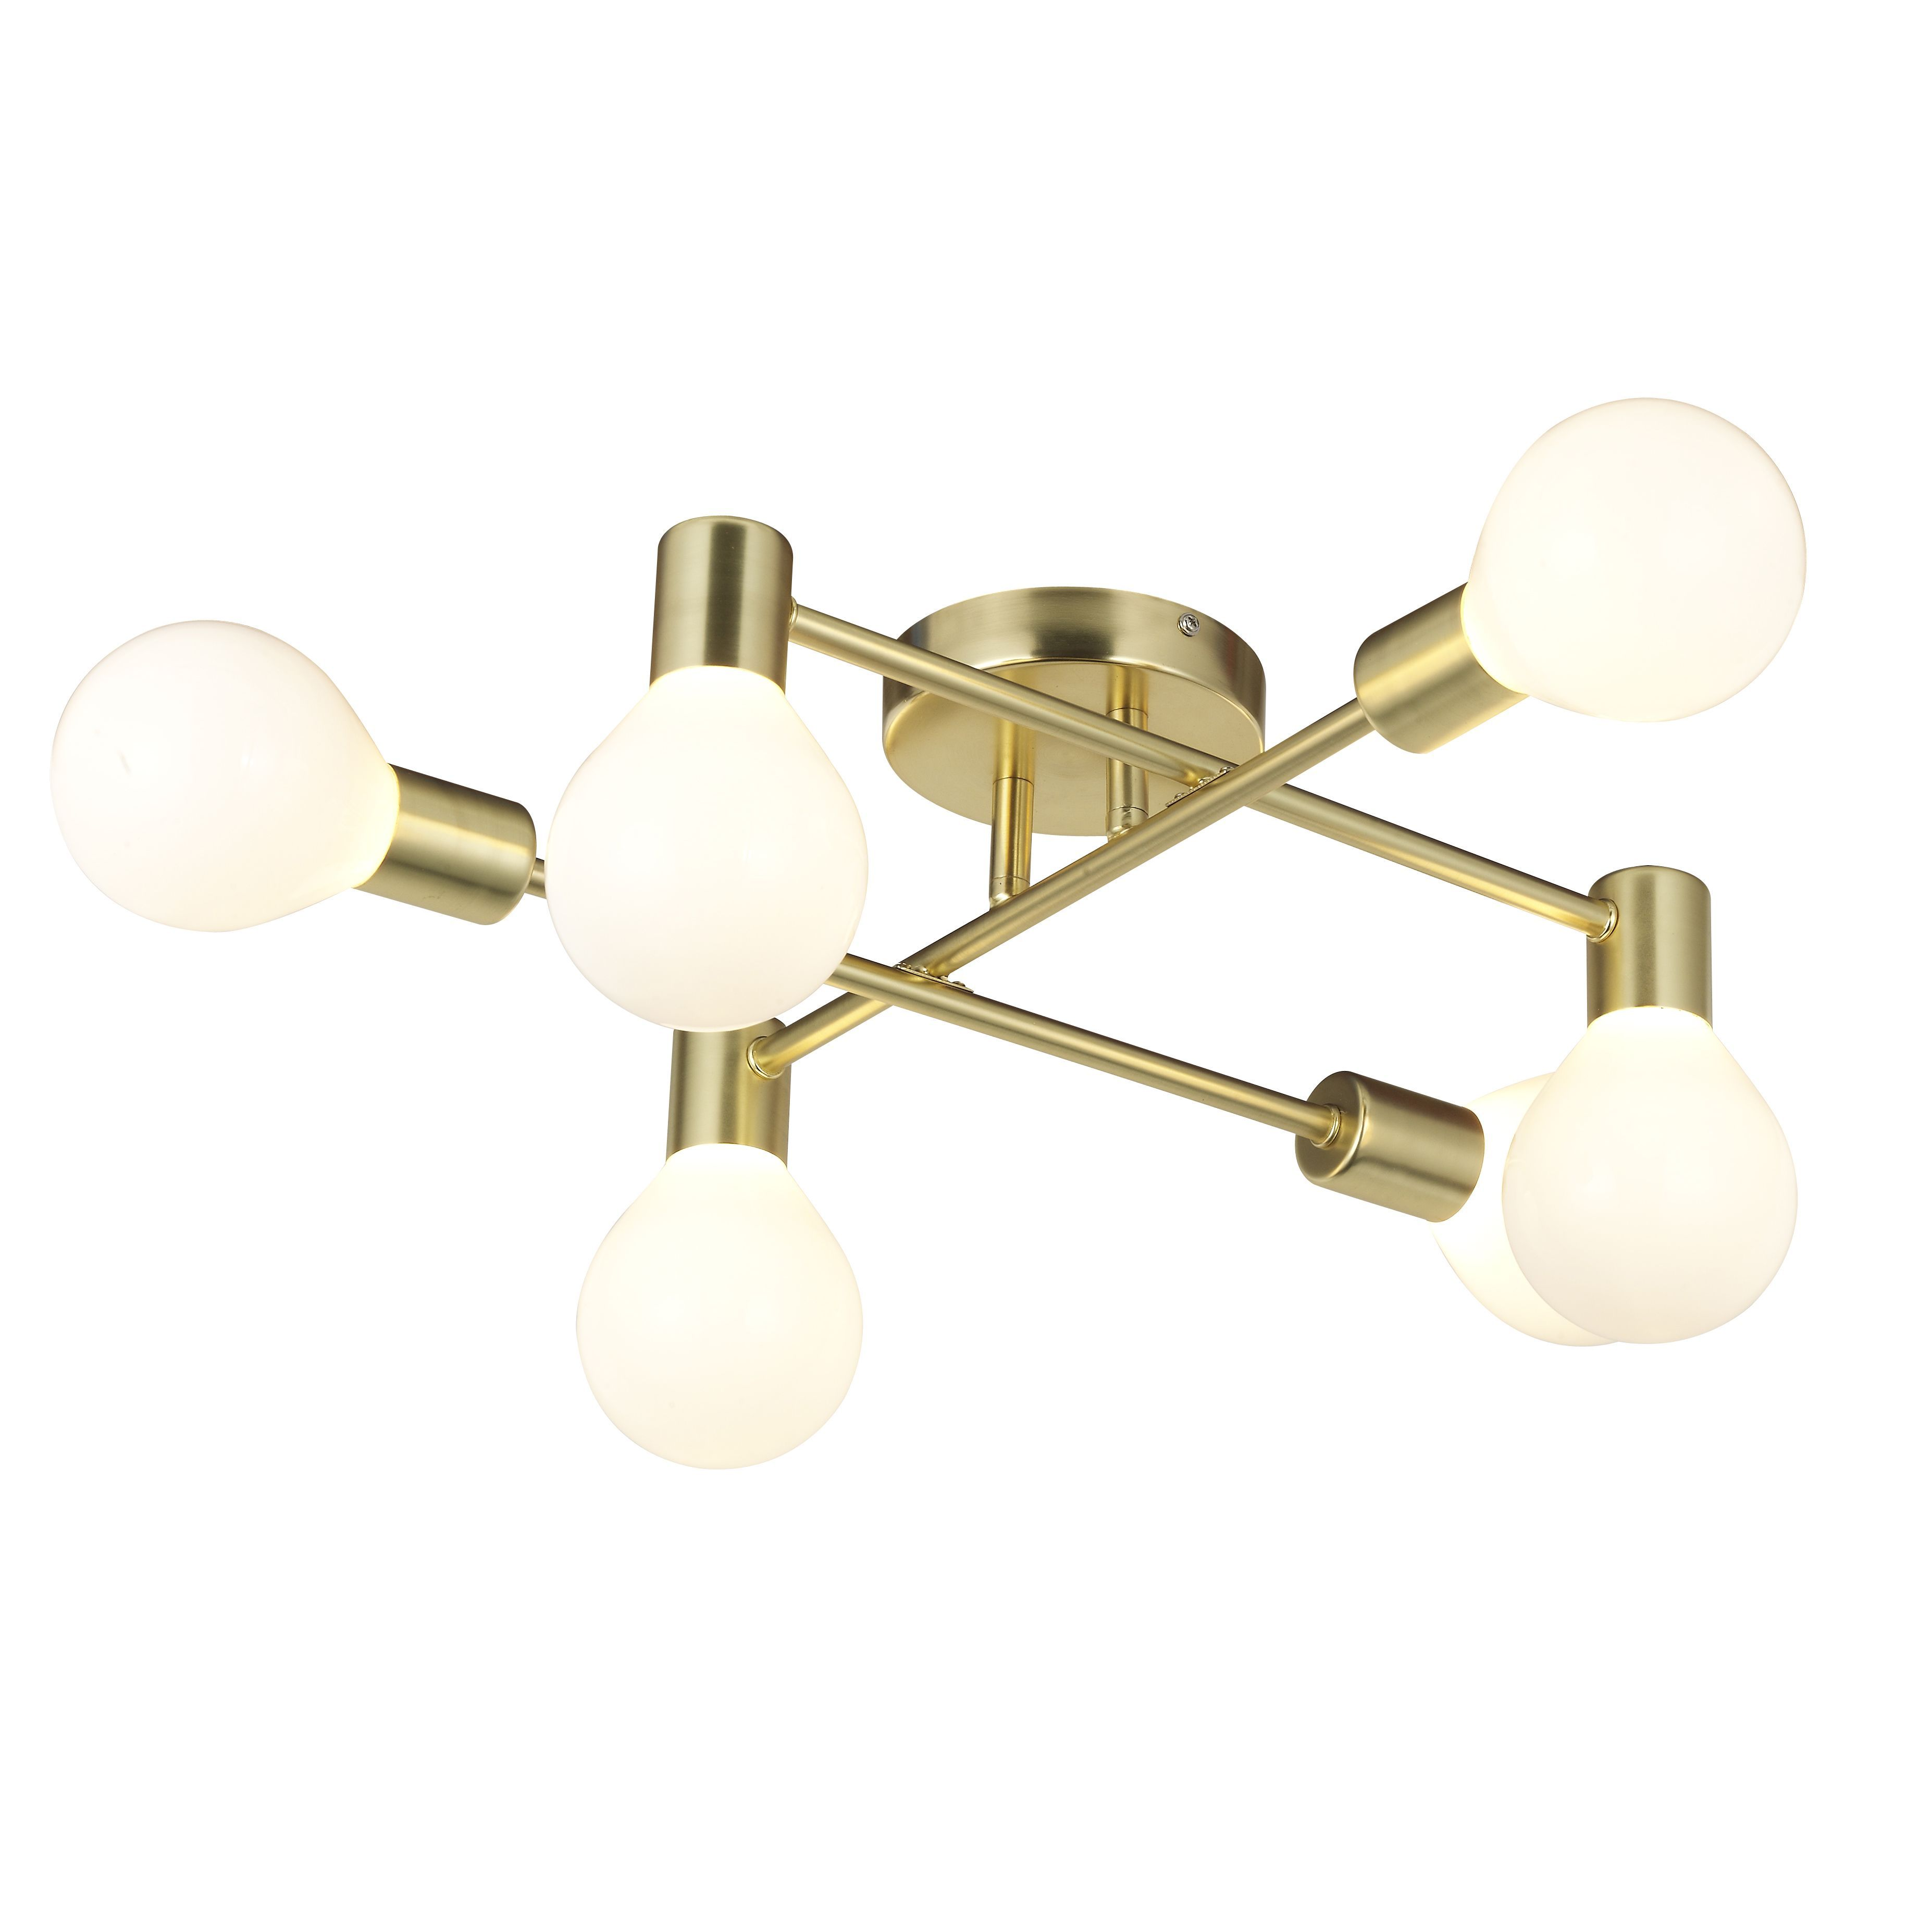 Channing Modern Gold Satin Brushed 6 Lamp Ceiling Light Departments Diy At B Amp Q Ceiling Lights Ceiling Lights Diy Ceiling Lights Uk